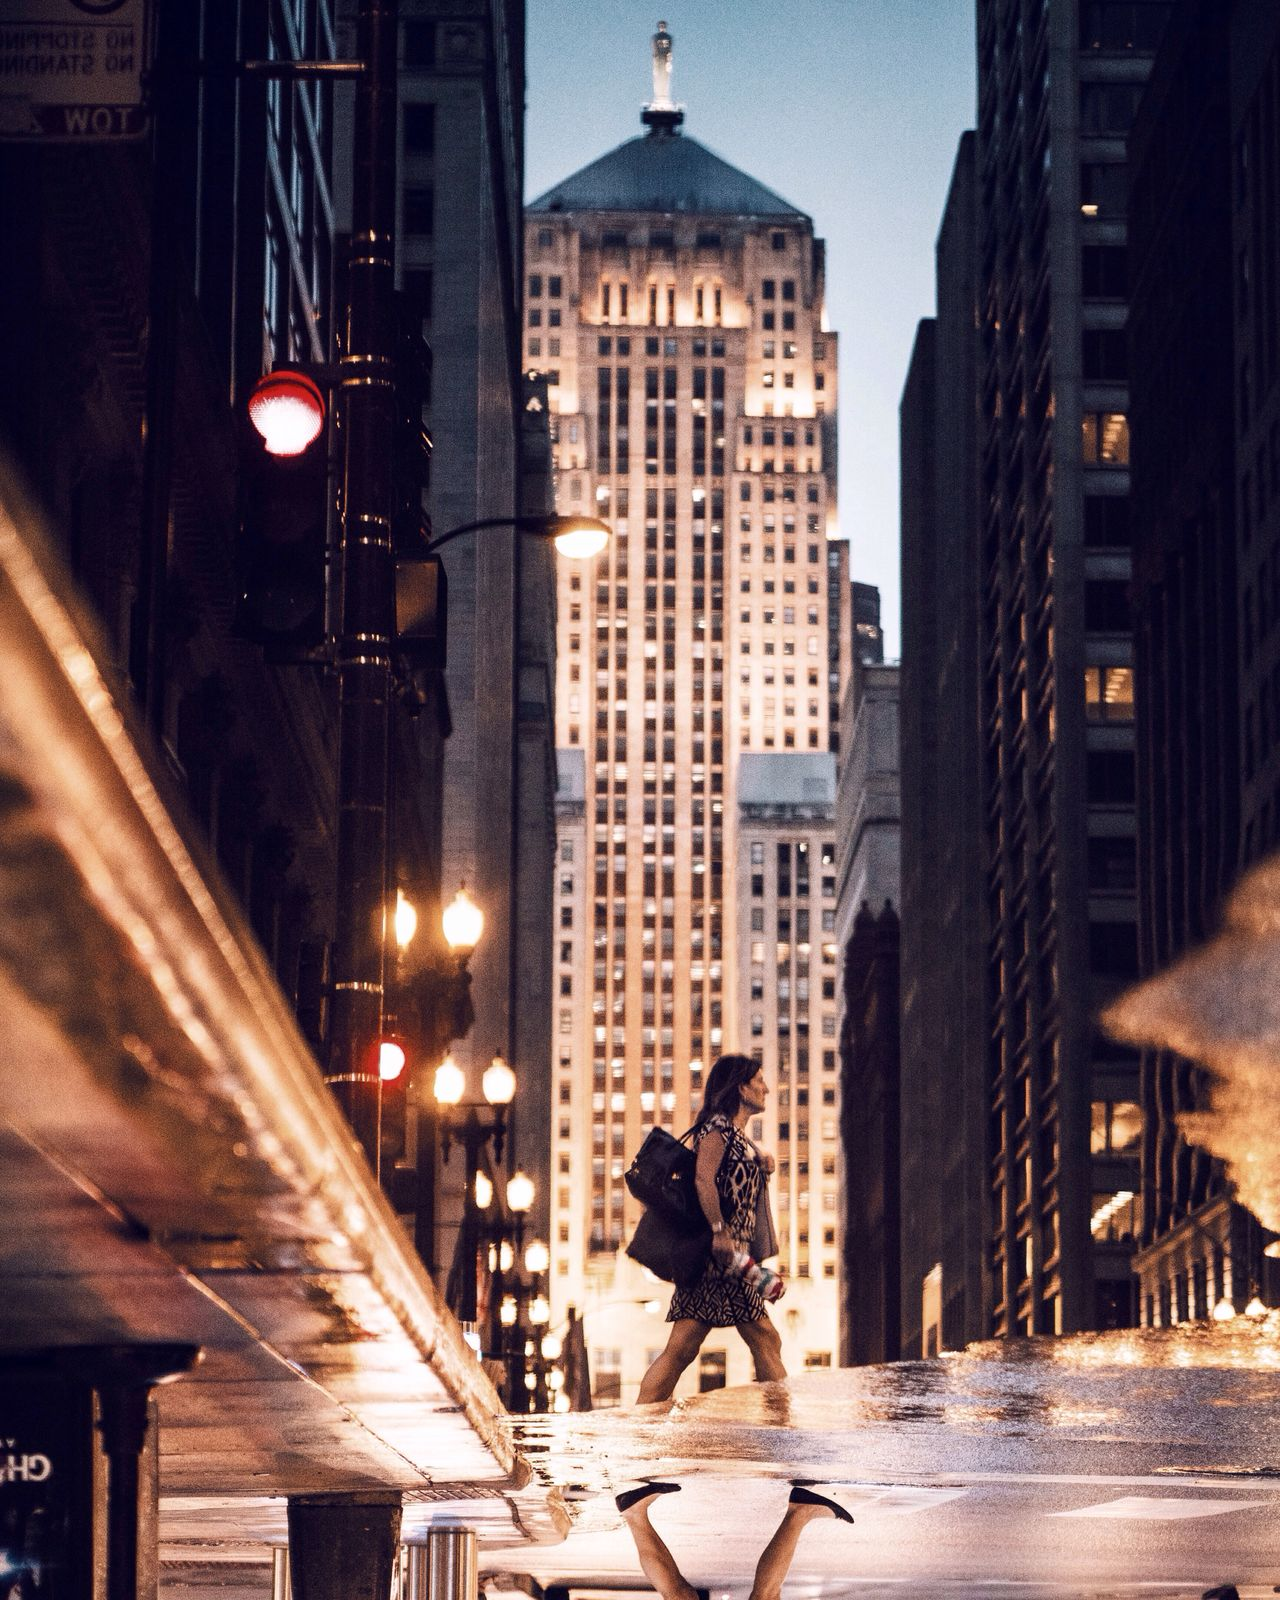 EyeEm Best Shots People VSCO Capture The Moment Reflections In The Water Puddle Reflection Architecture Chicago